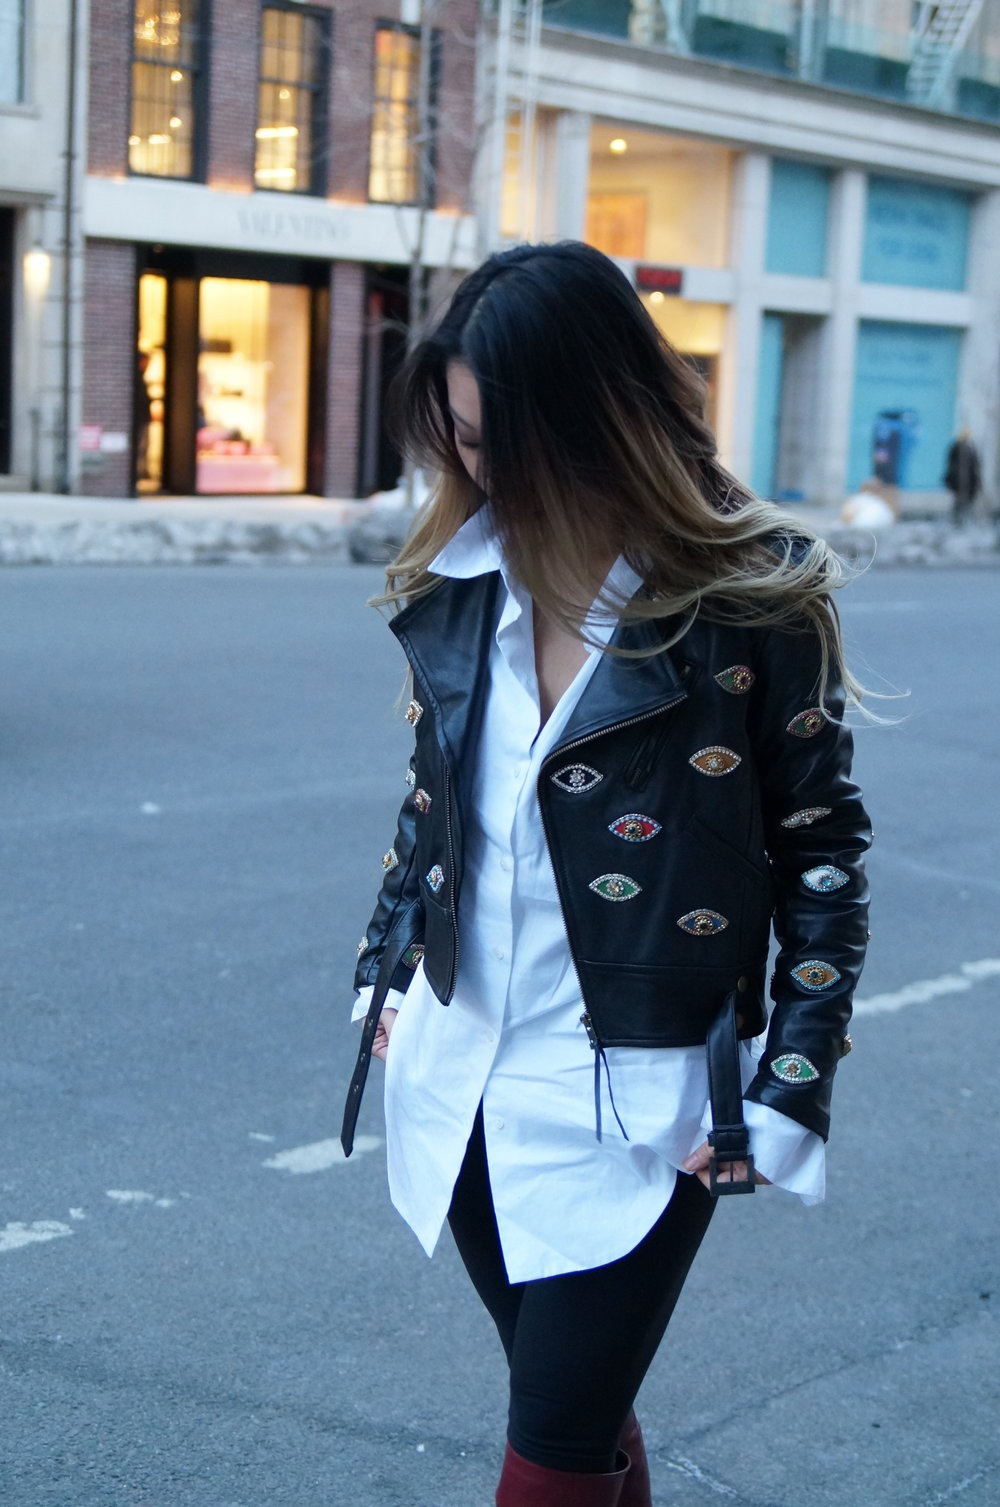 leatherjacket_embellished_evileye6.JPG